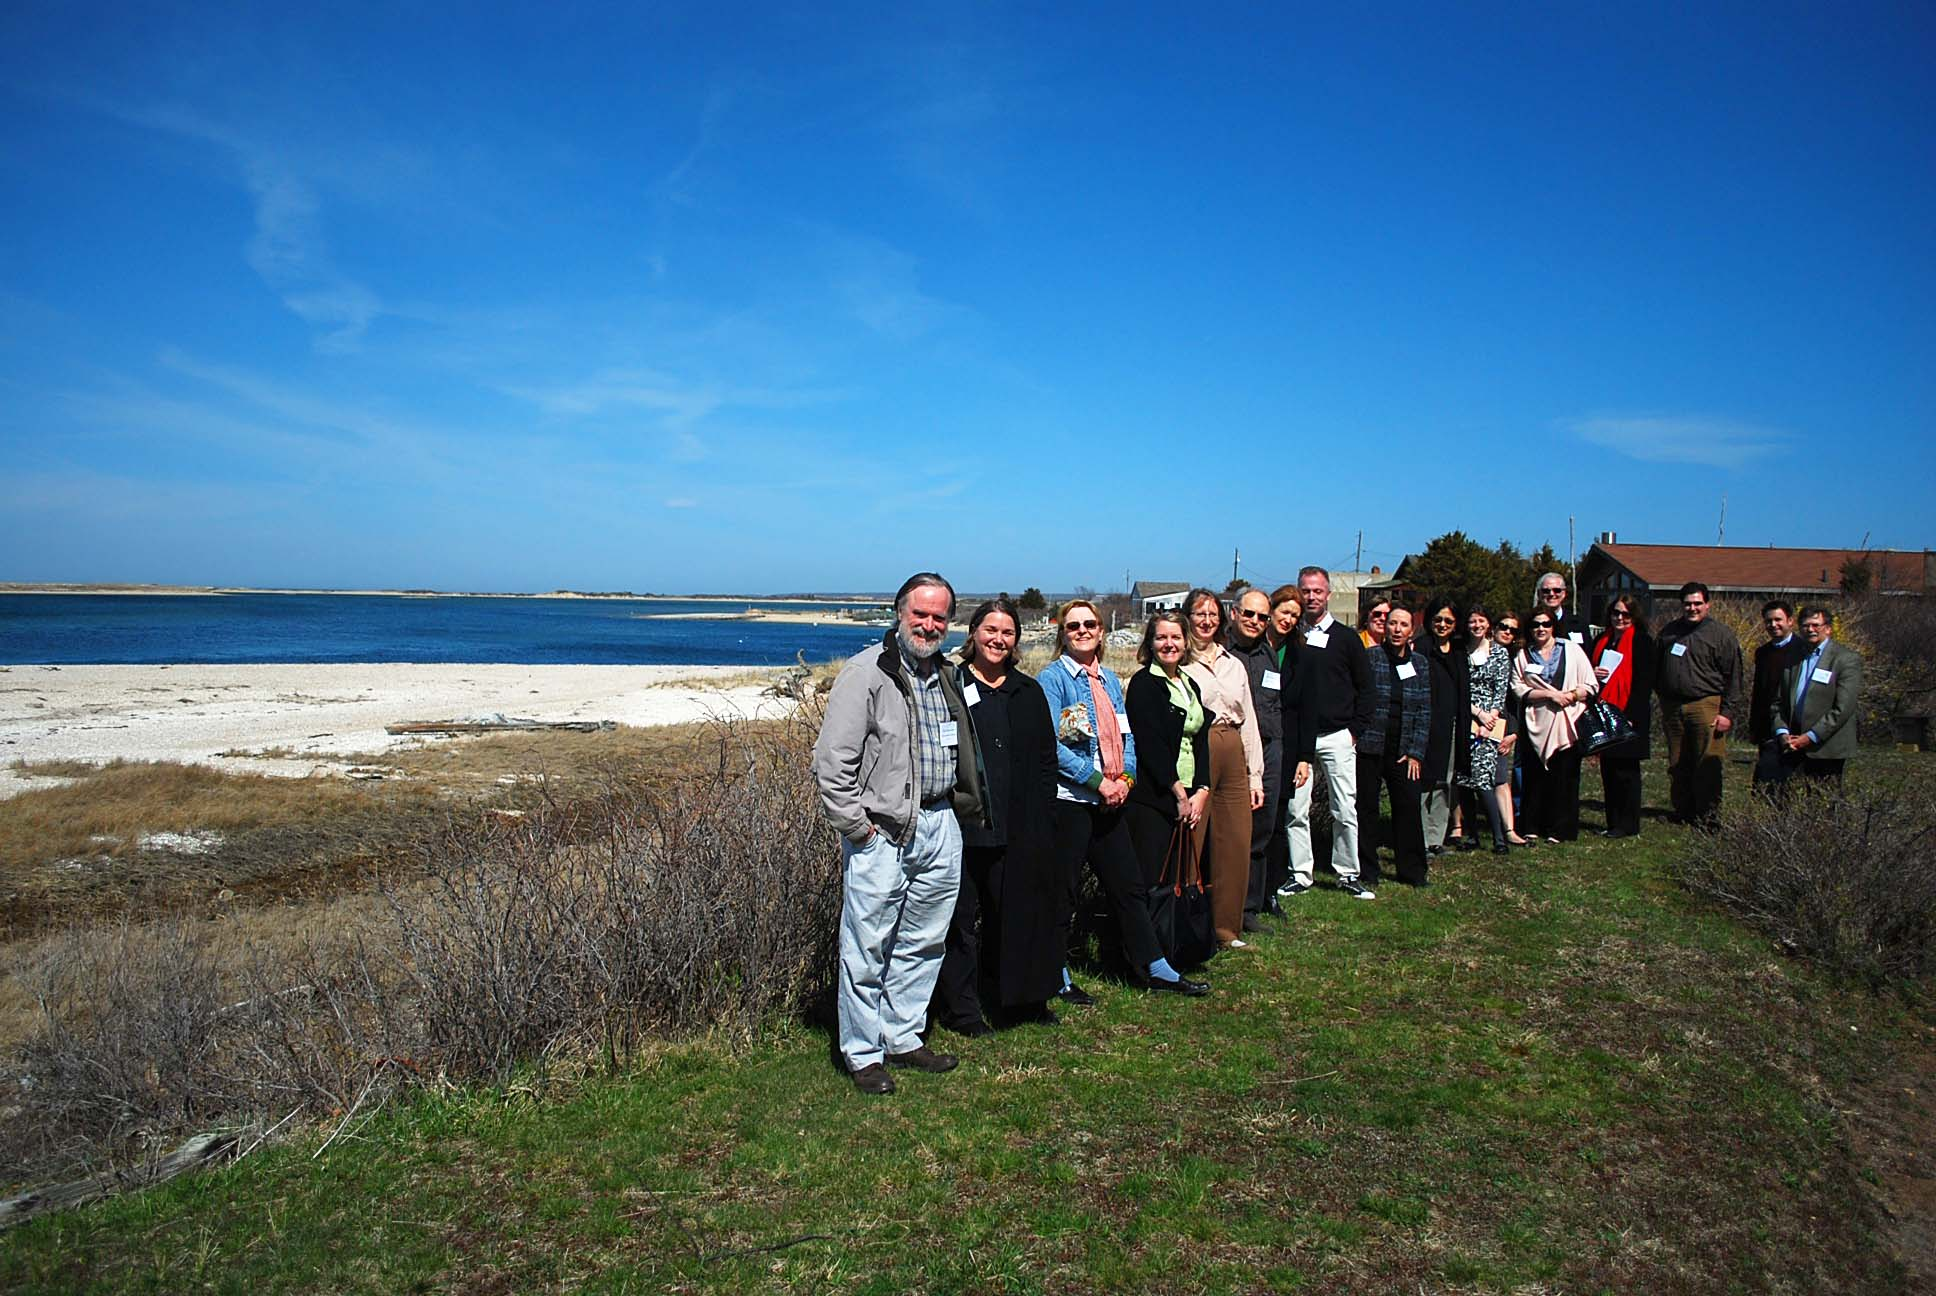 HAHS representatives at the Easthampton workshop in 2009